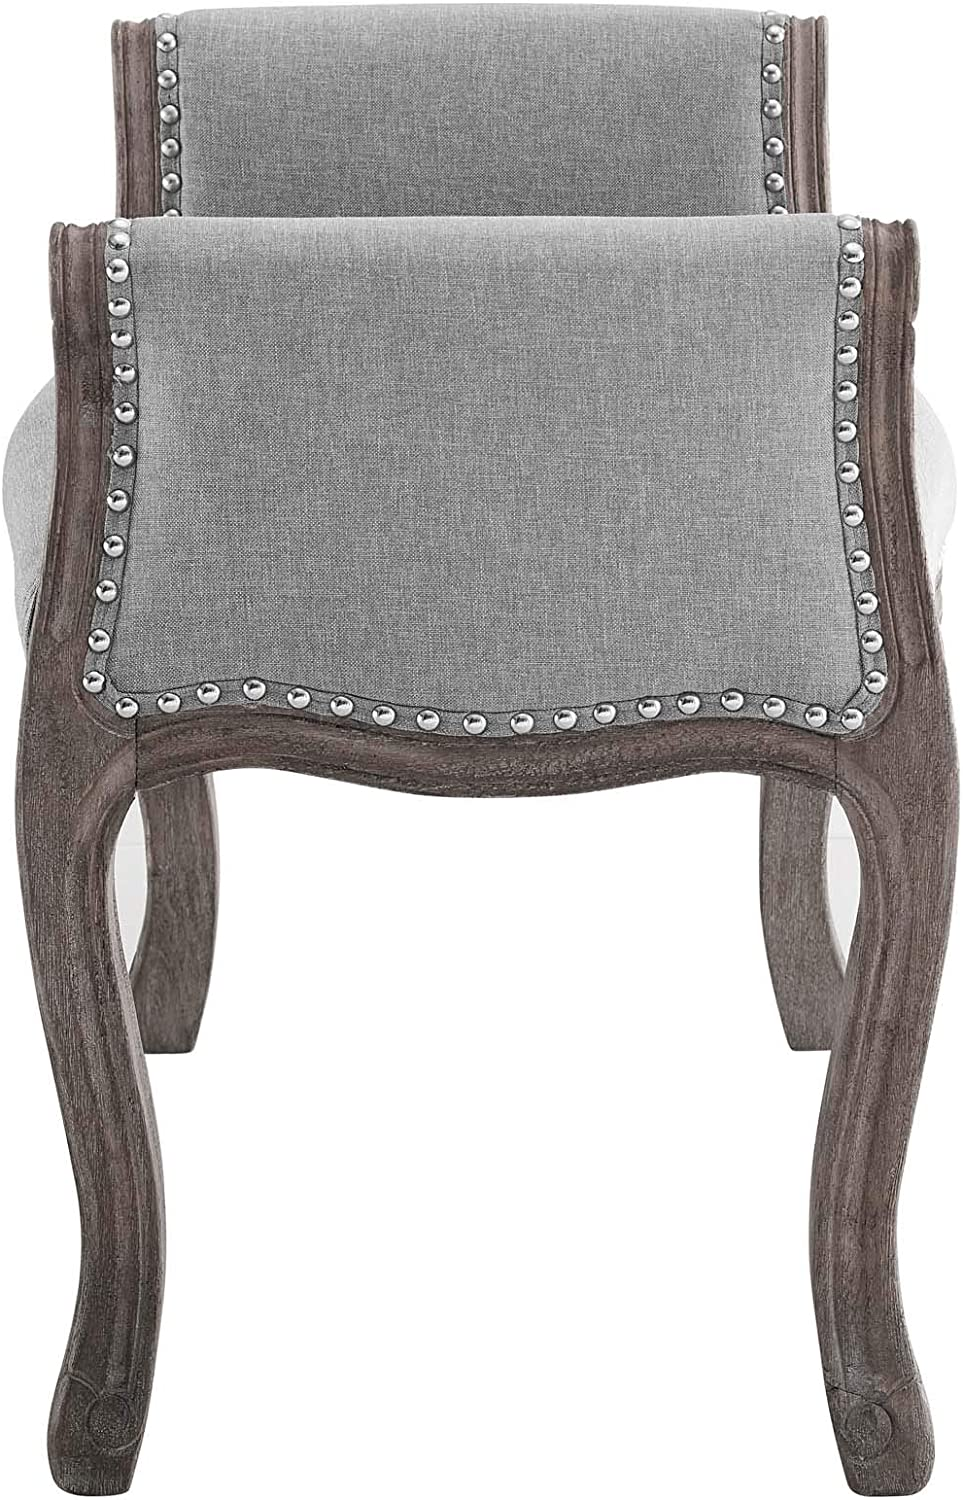 Modway Avail Vintage French Upholstered Fabric Entryway Bench in Gray